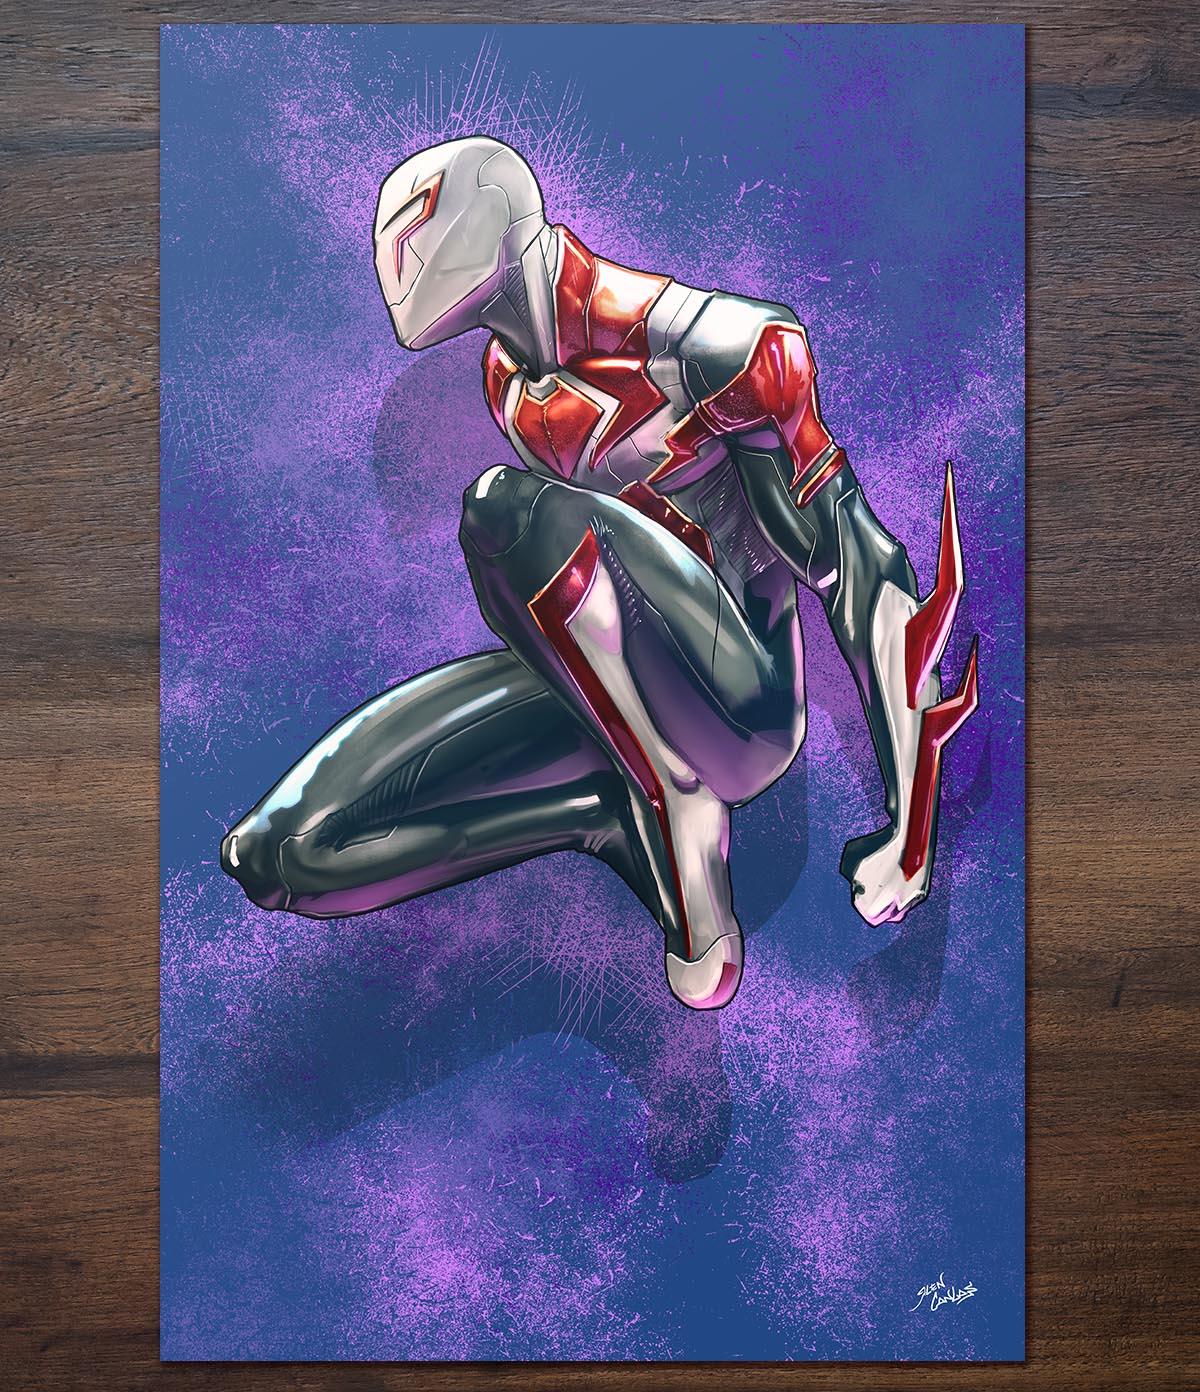 Image of Spiderman 2099 White Suit